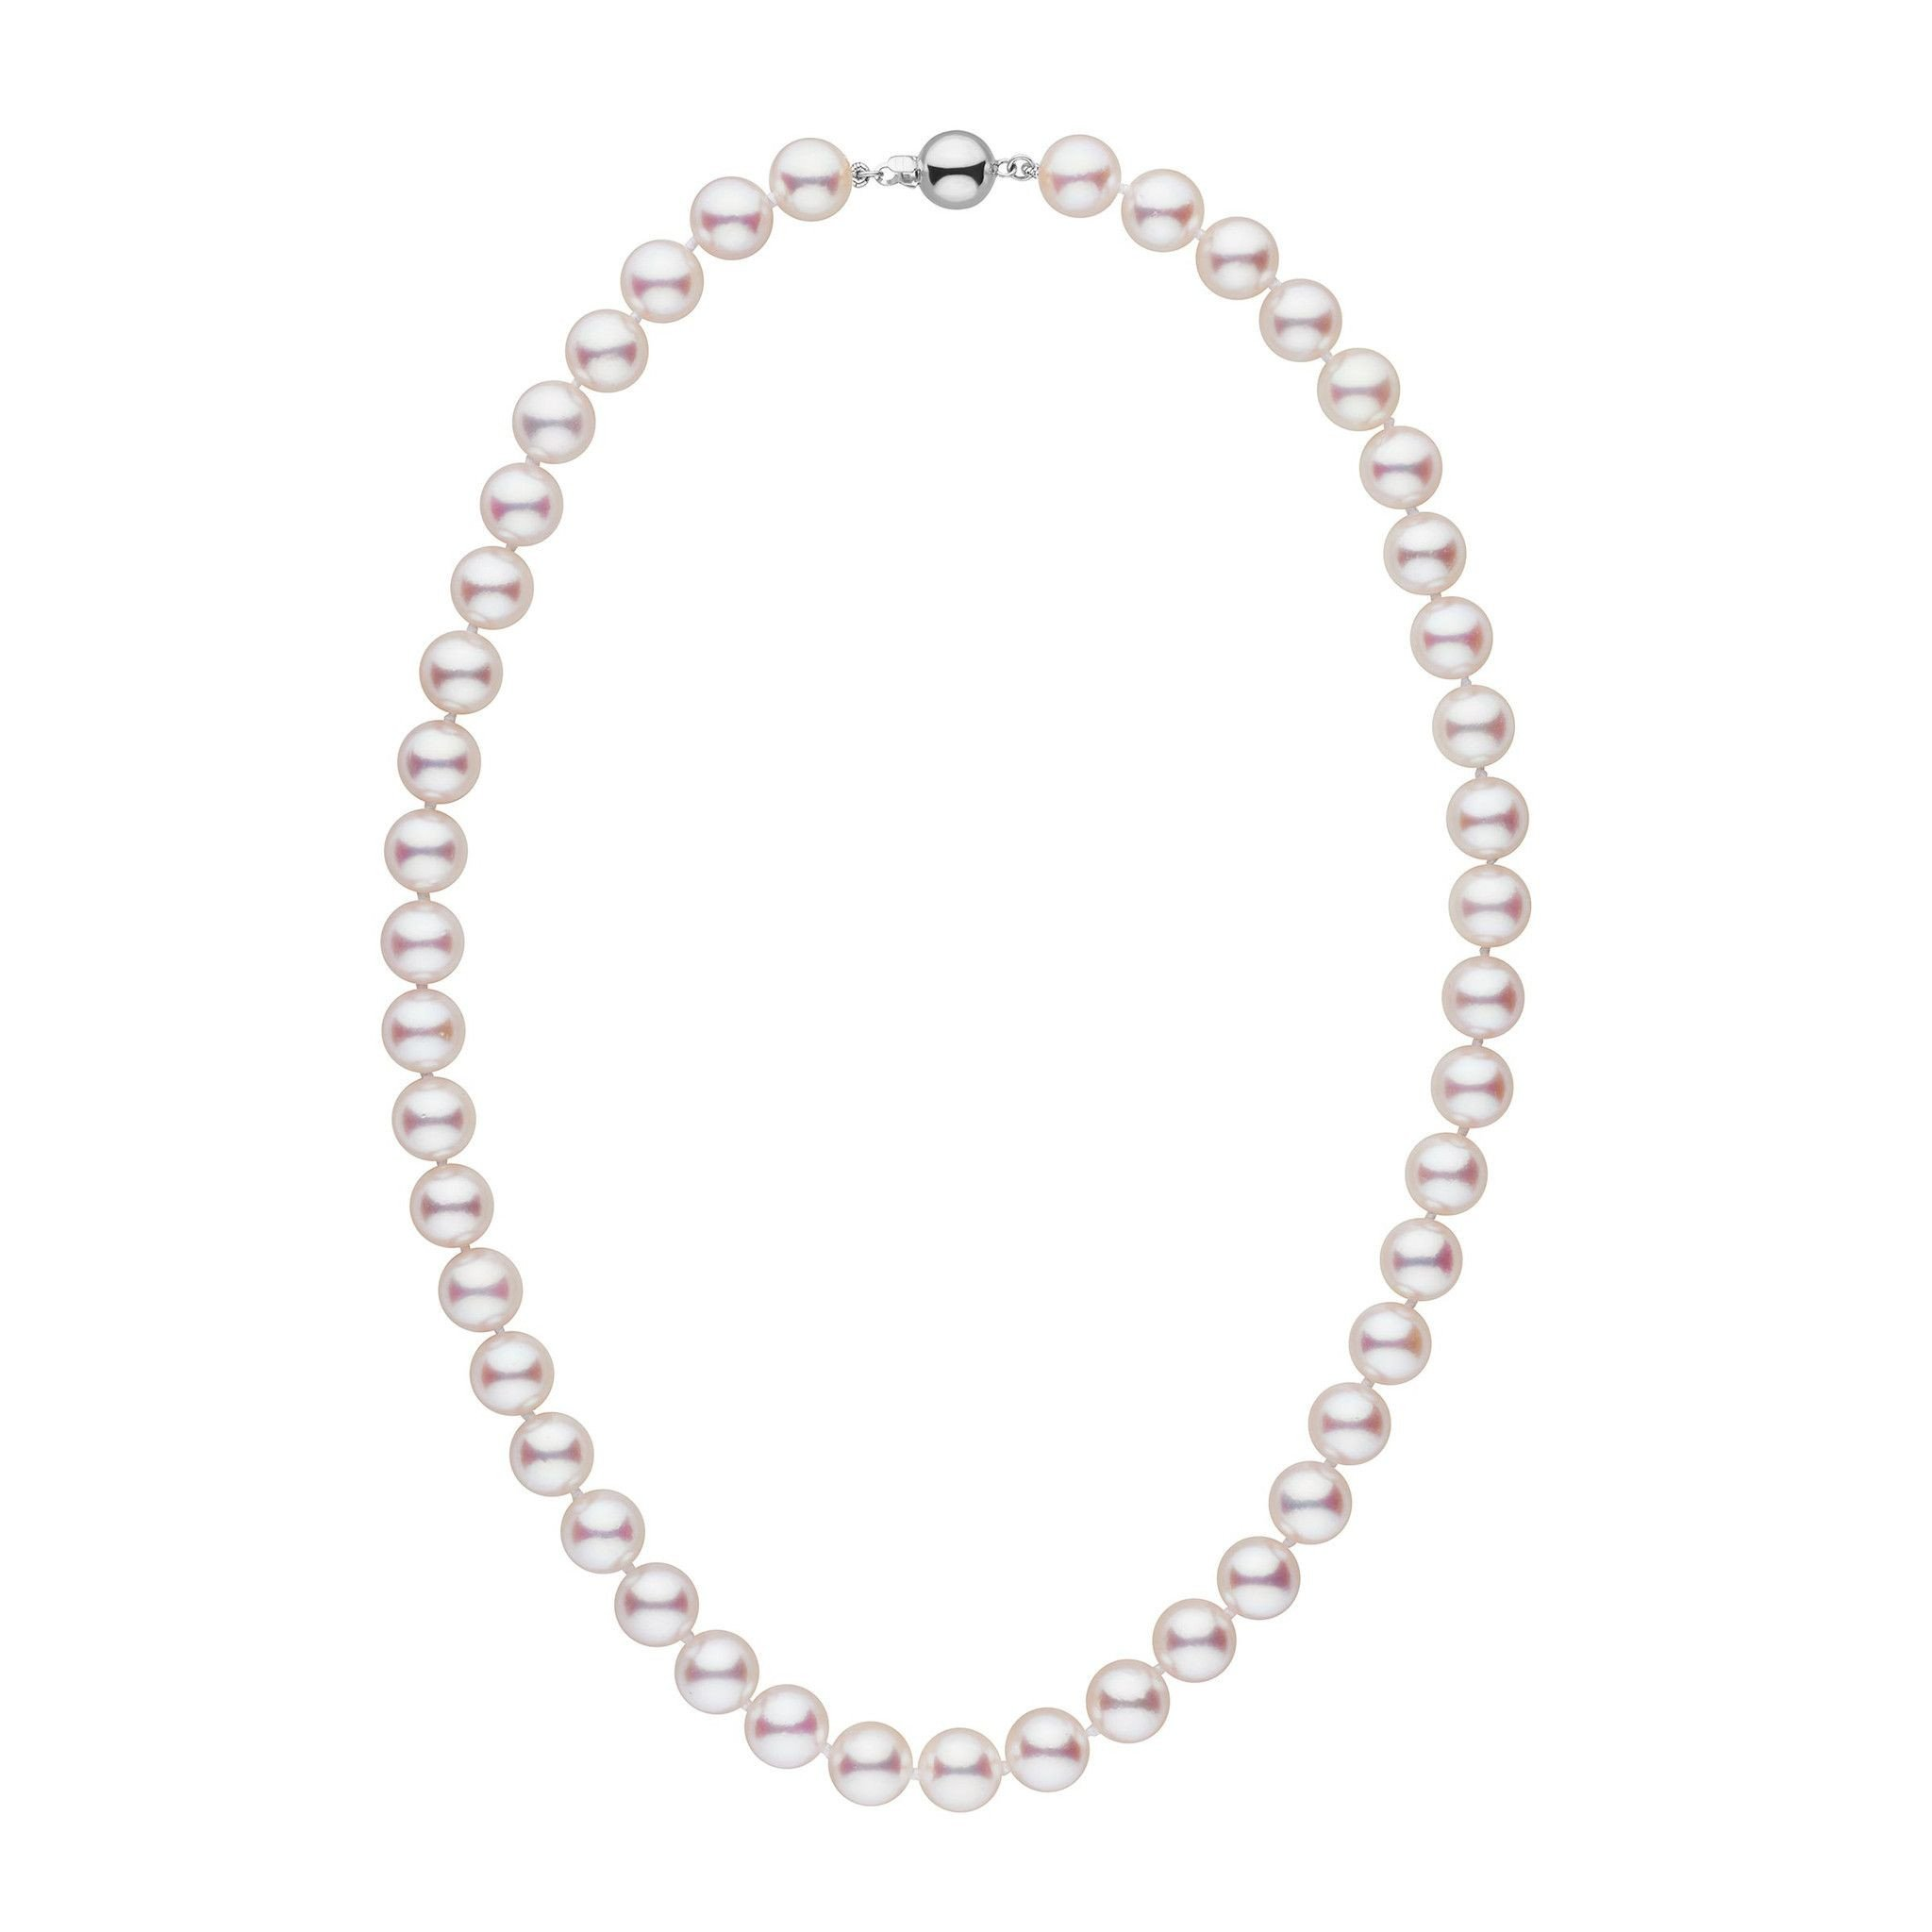 9.0-9.5 mm 18 Inch White Hanadama Akoya Pearl Necklace by Pearl Paradise